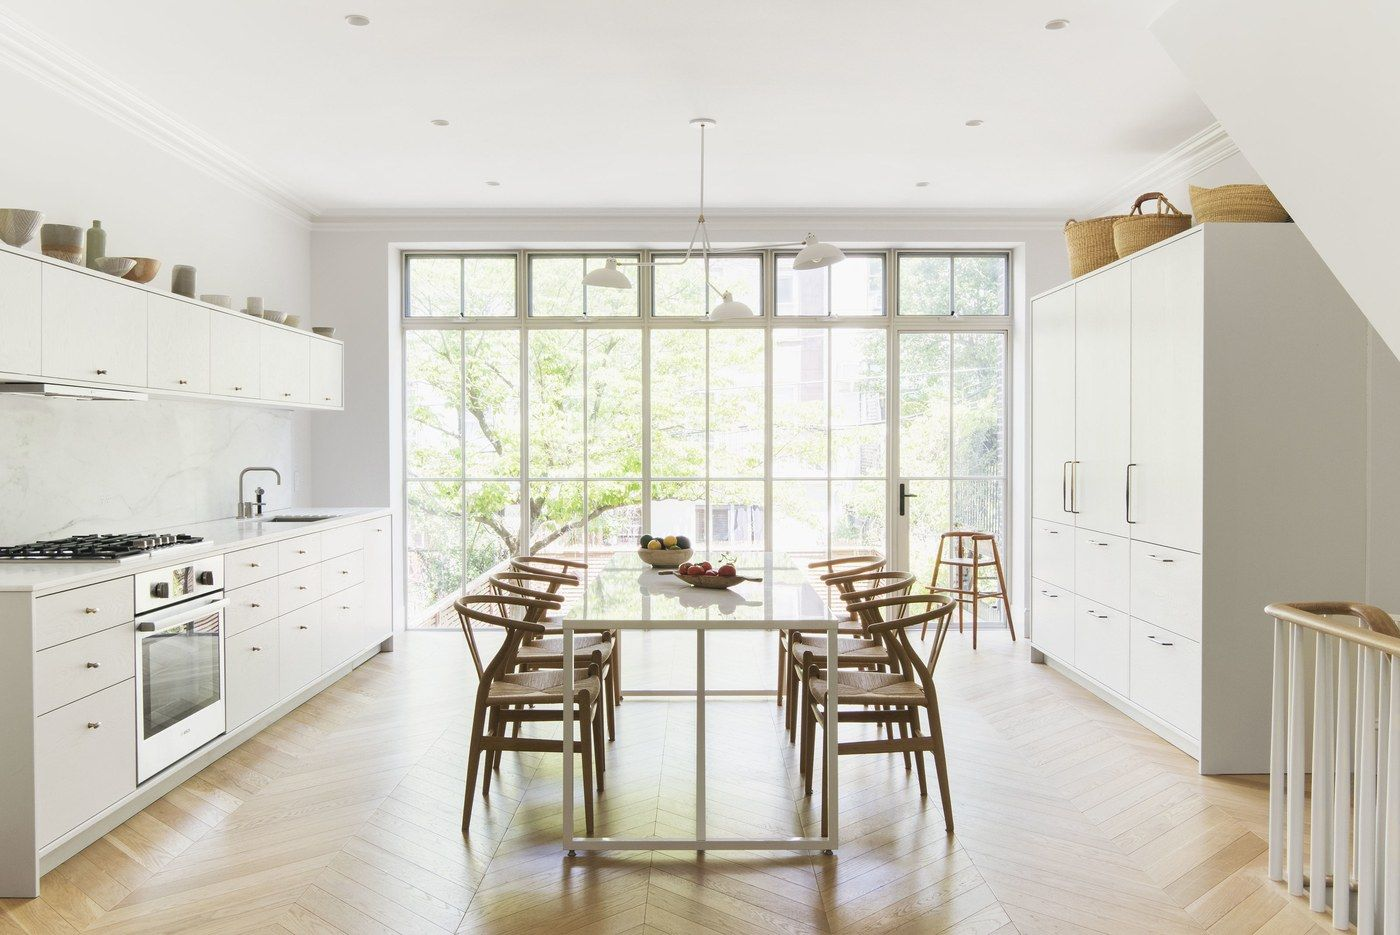 My Happy Place: This Linger-worthy Apartment | space | Pinterest ...